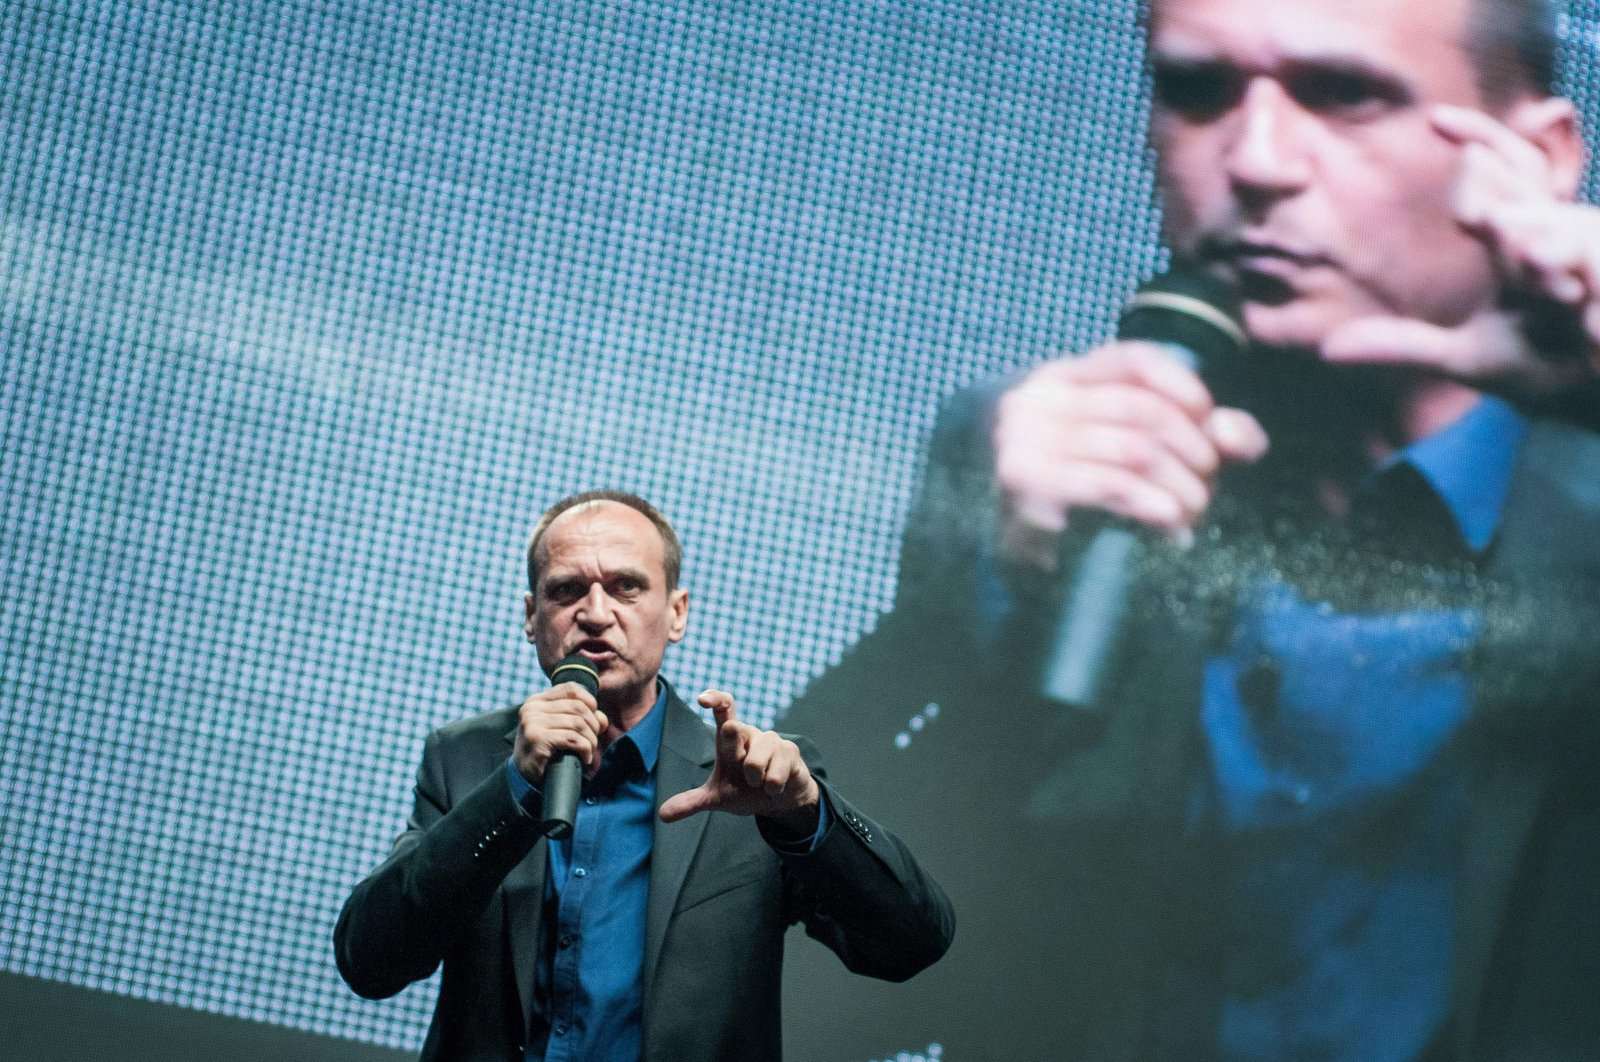 Polish artist and activist Pawel Kukiz addresses his supporters during a congress in Lubin, Poland, June 27, 2015. (AFP Photo)